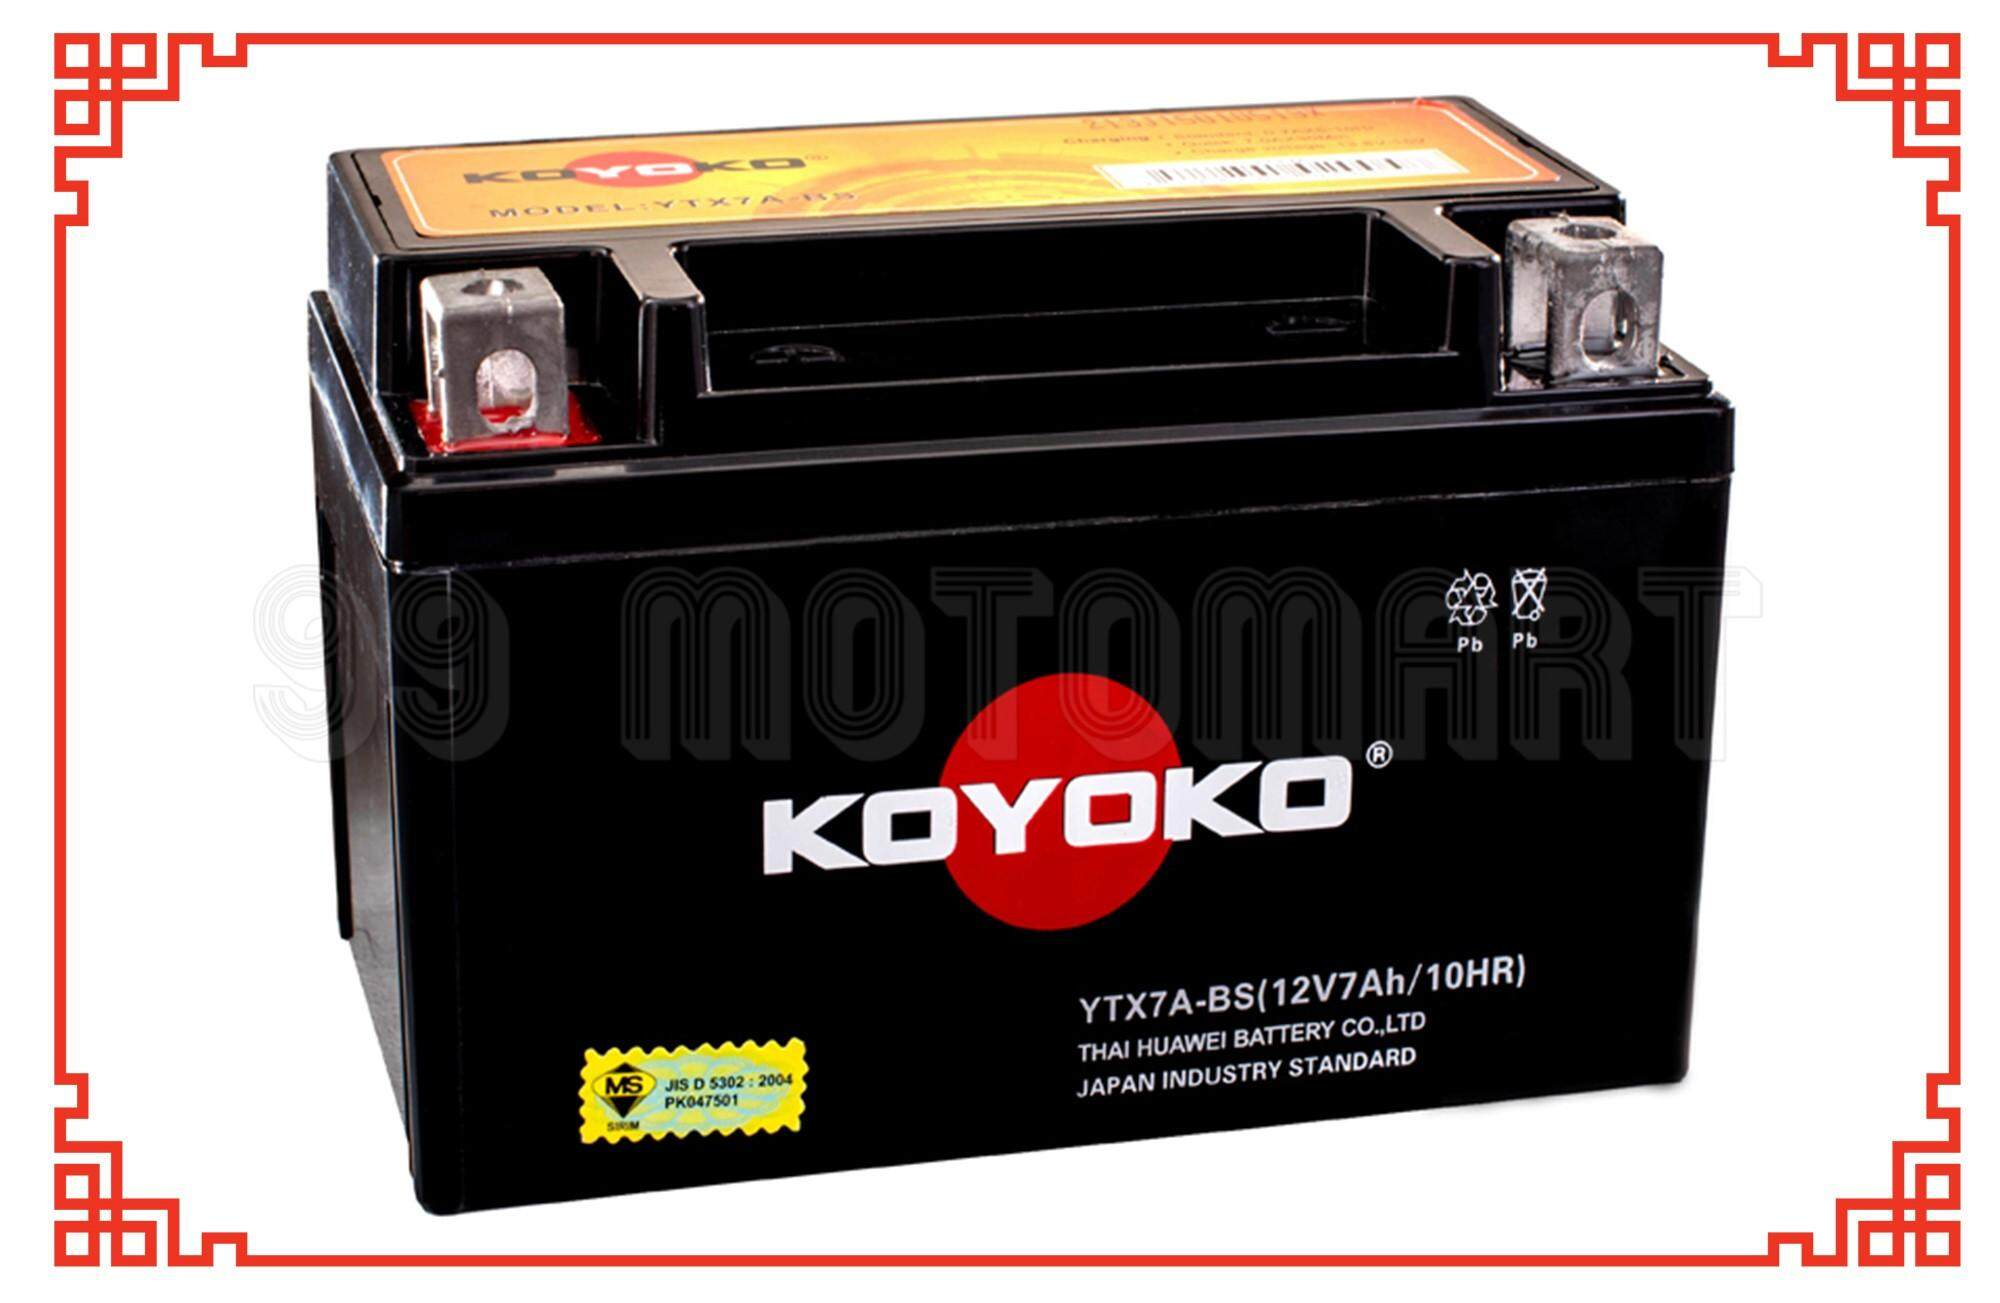 Koyoko Ytx7a-Bs 12v7ah/10hr Motorcycle Battery (sealed) Ytx7a By 99 Motomart.